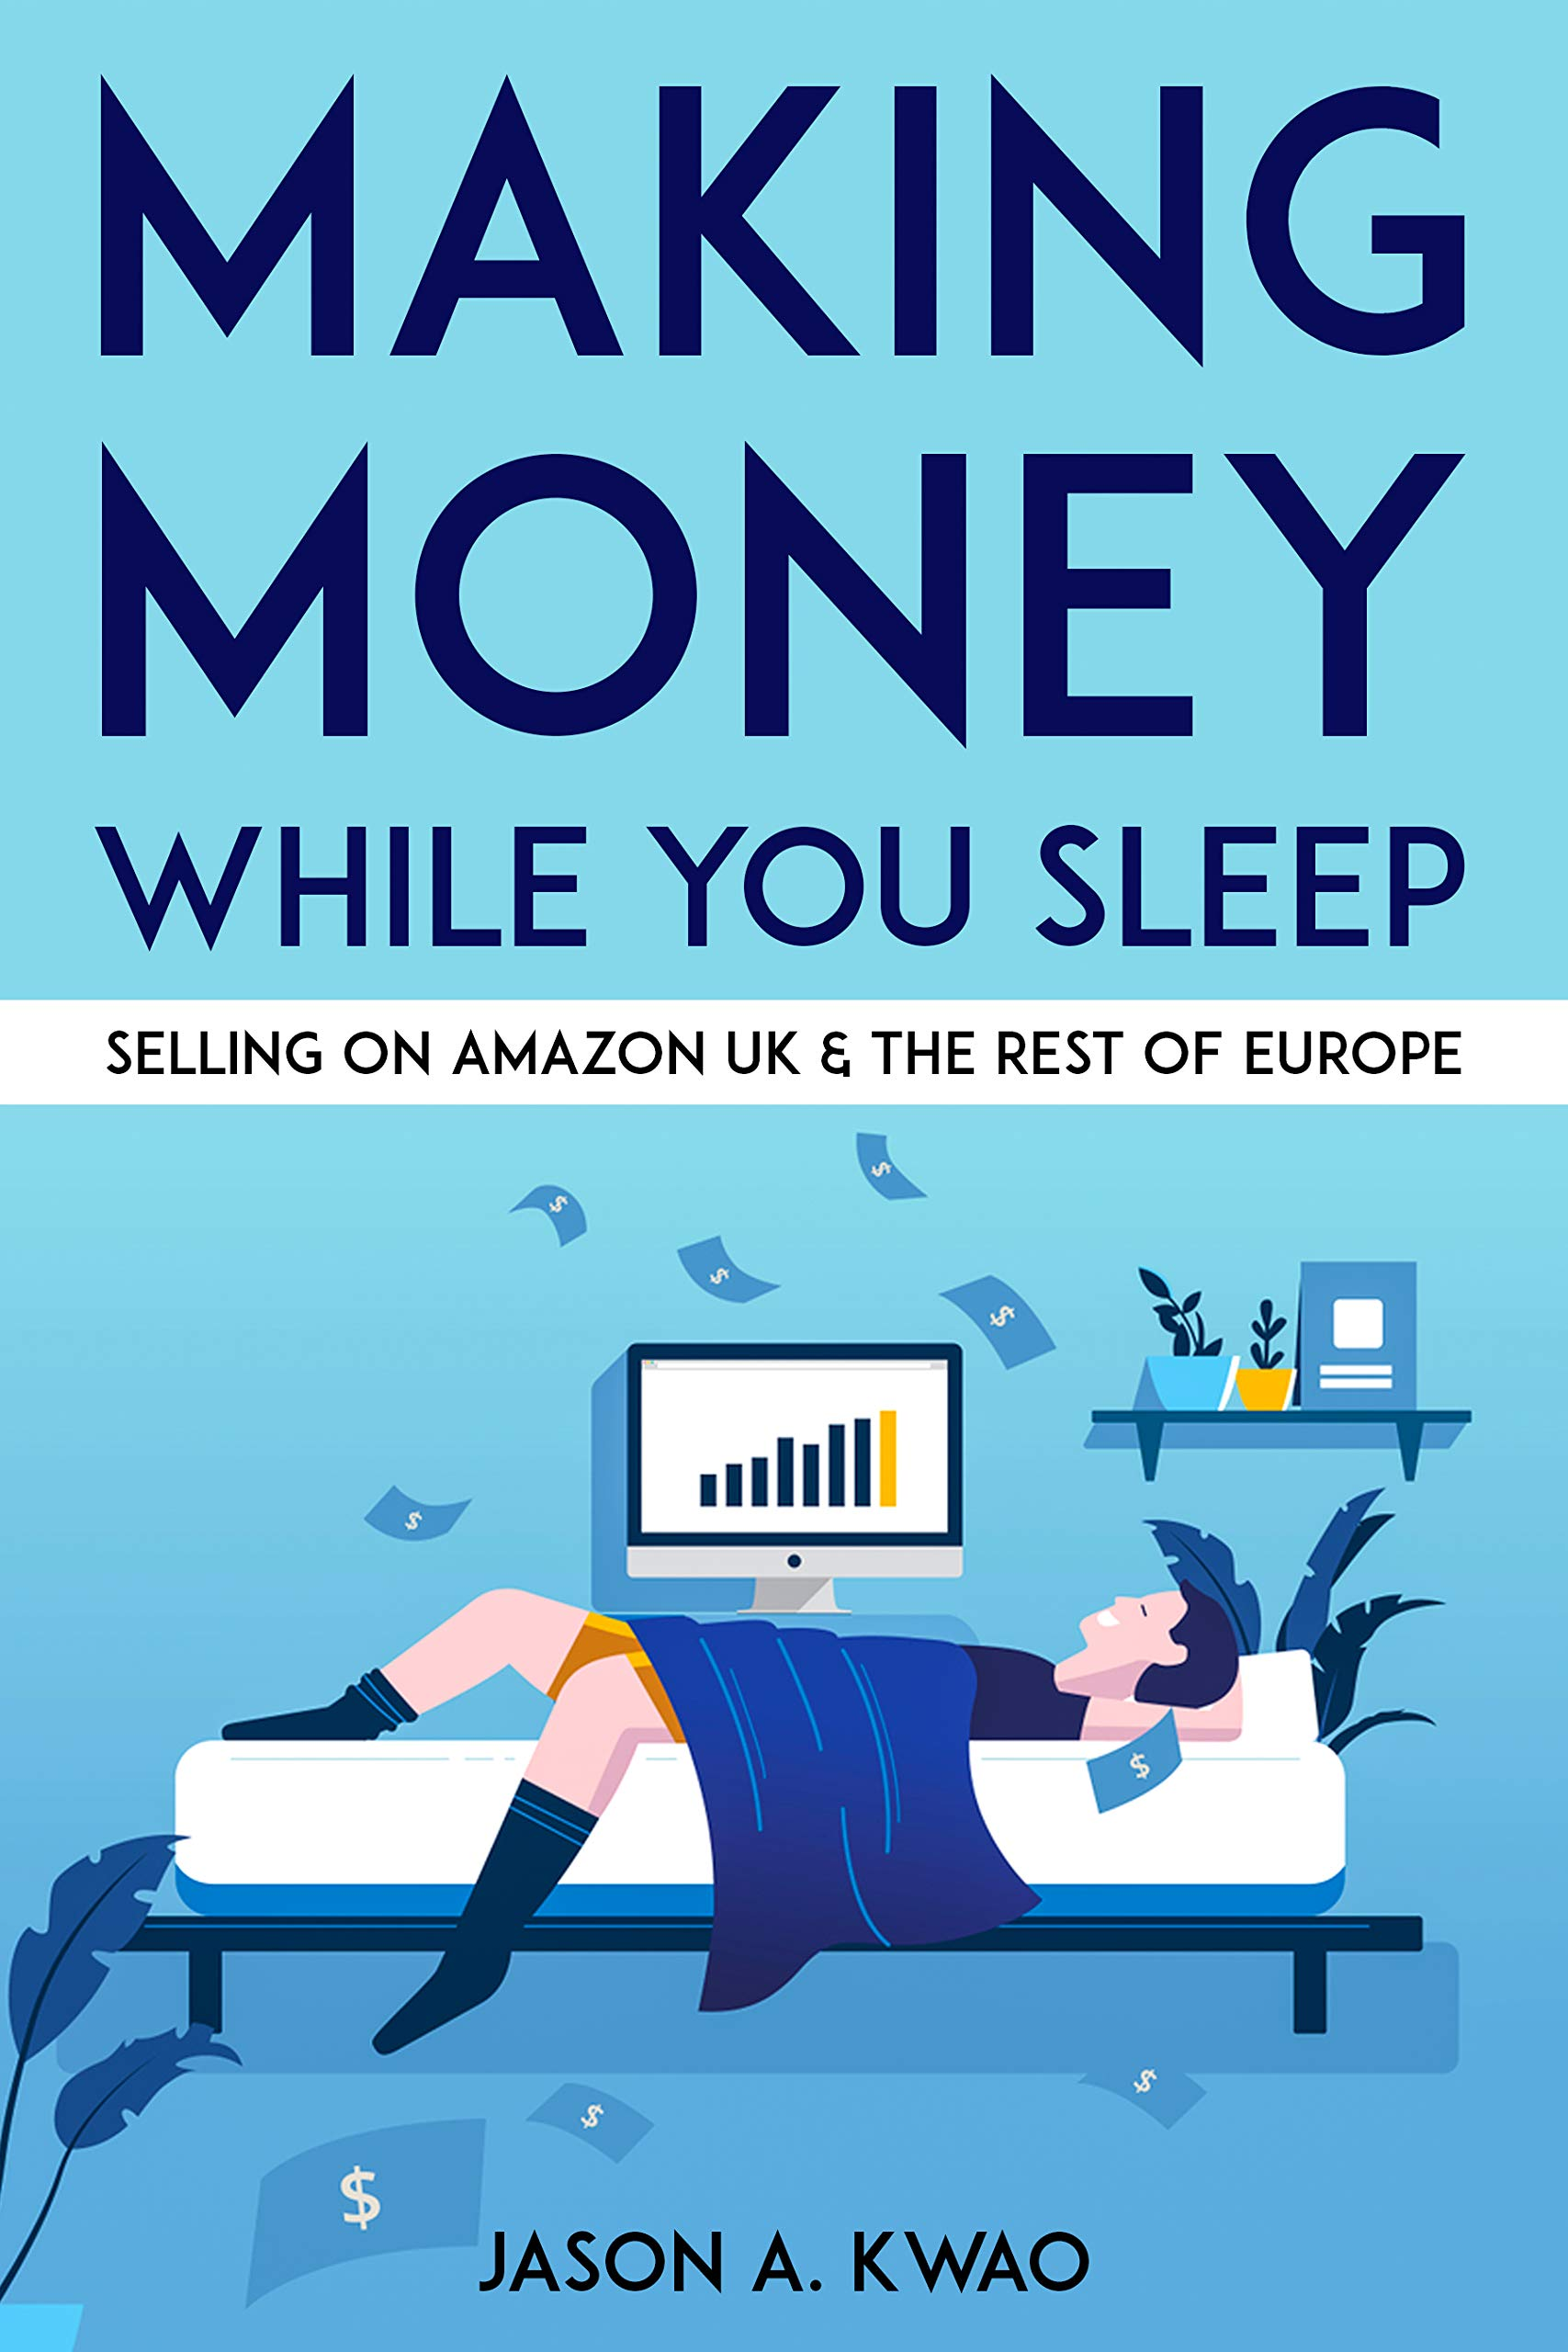 Making Money While You Sleep: Selling on Amazon UK & The Rest of Europe